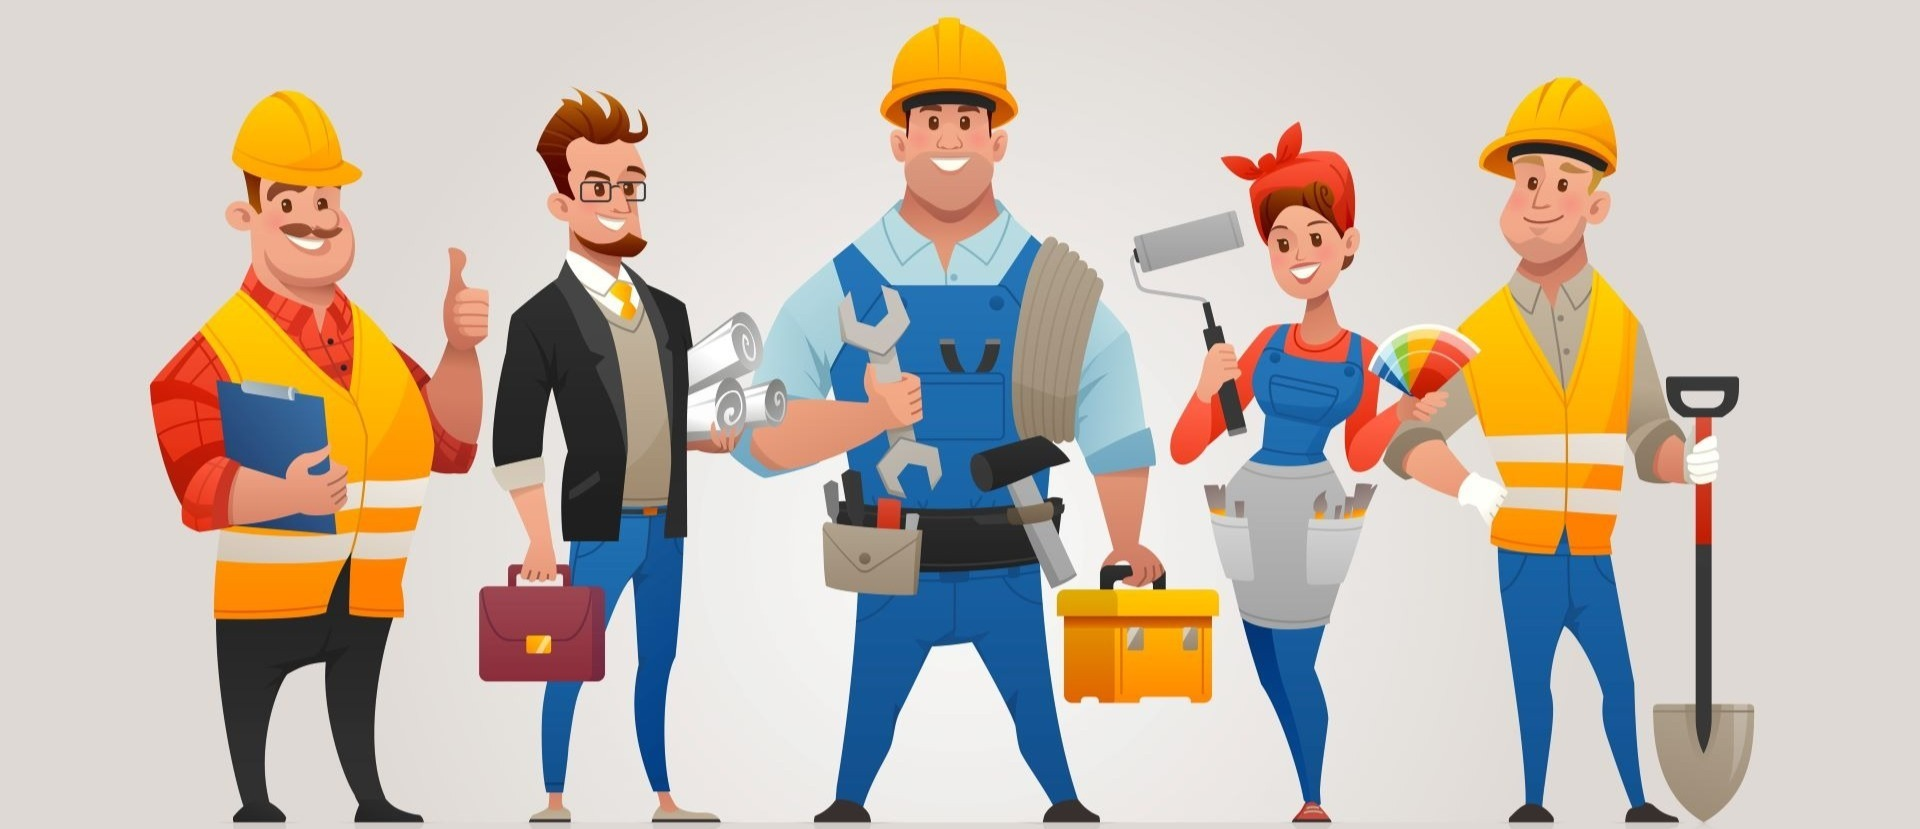 Fix My Home SA Plumber Painting and Security Systems